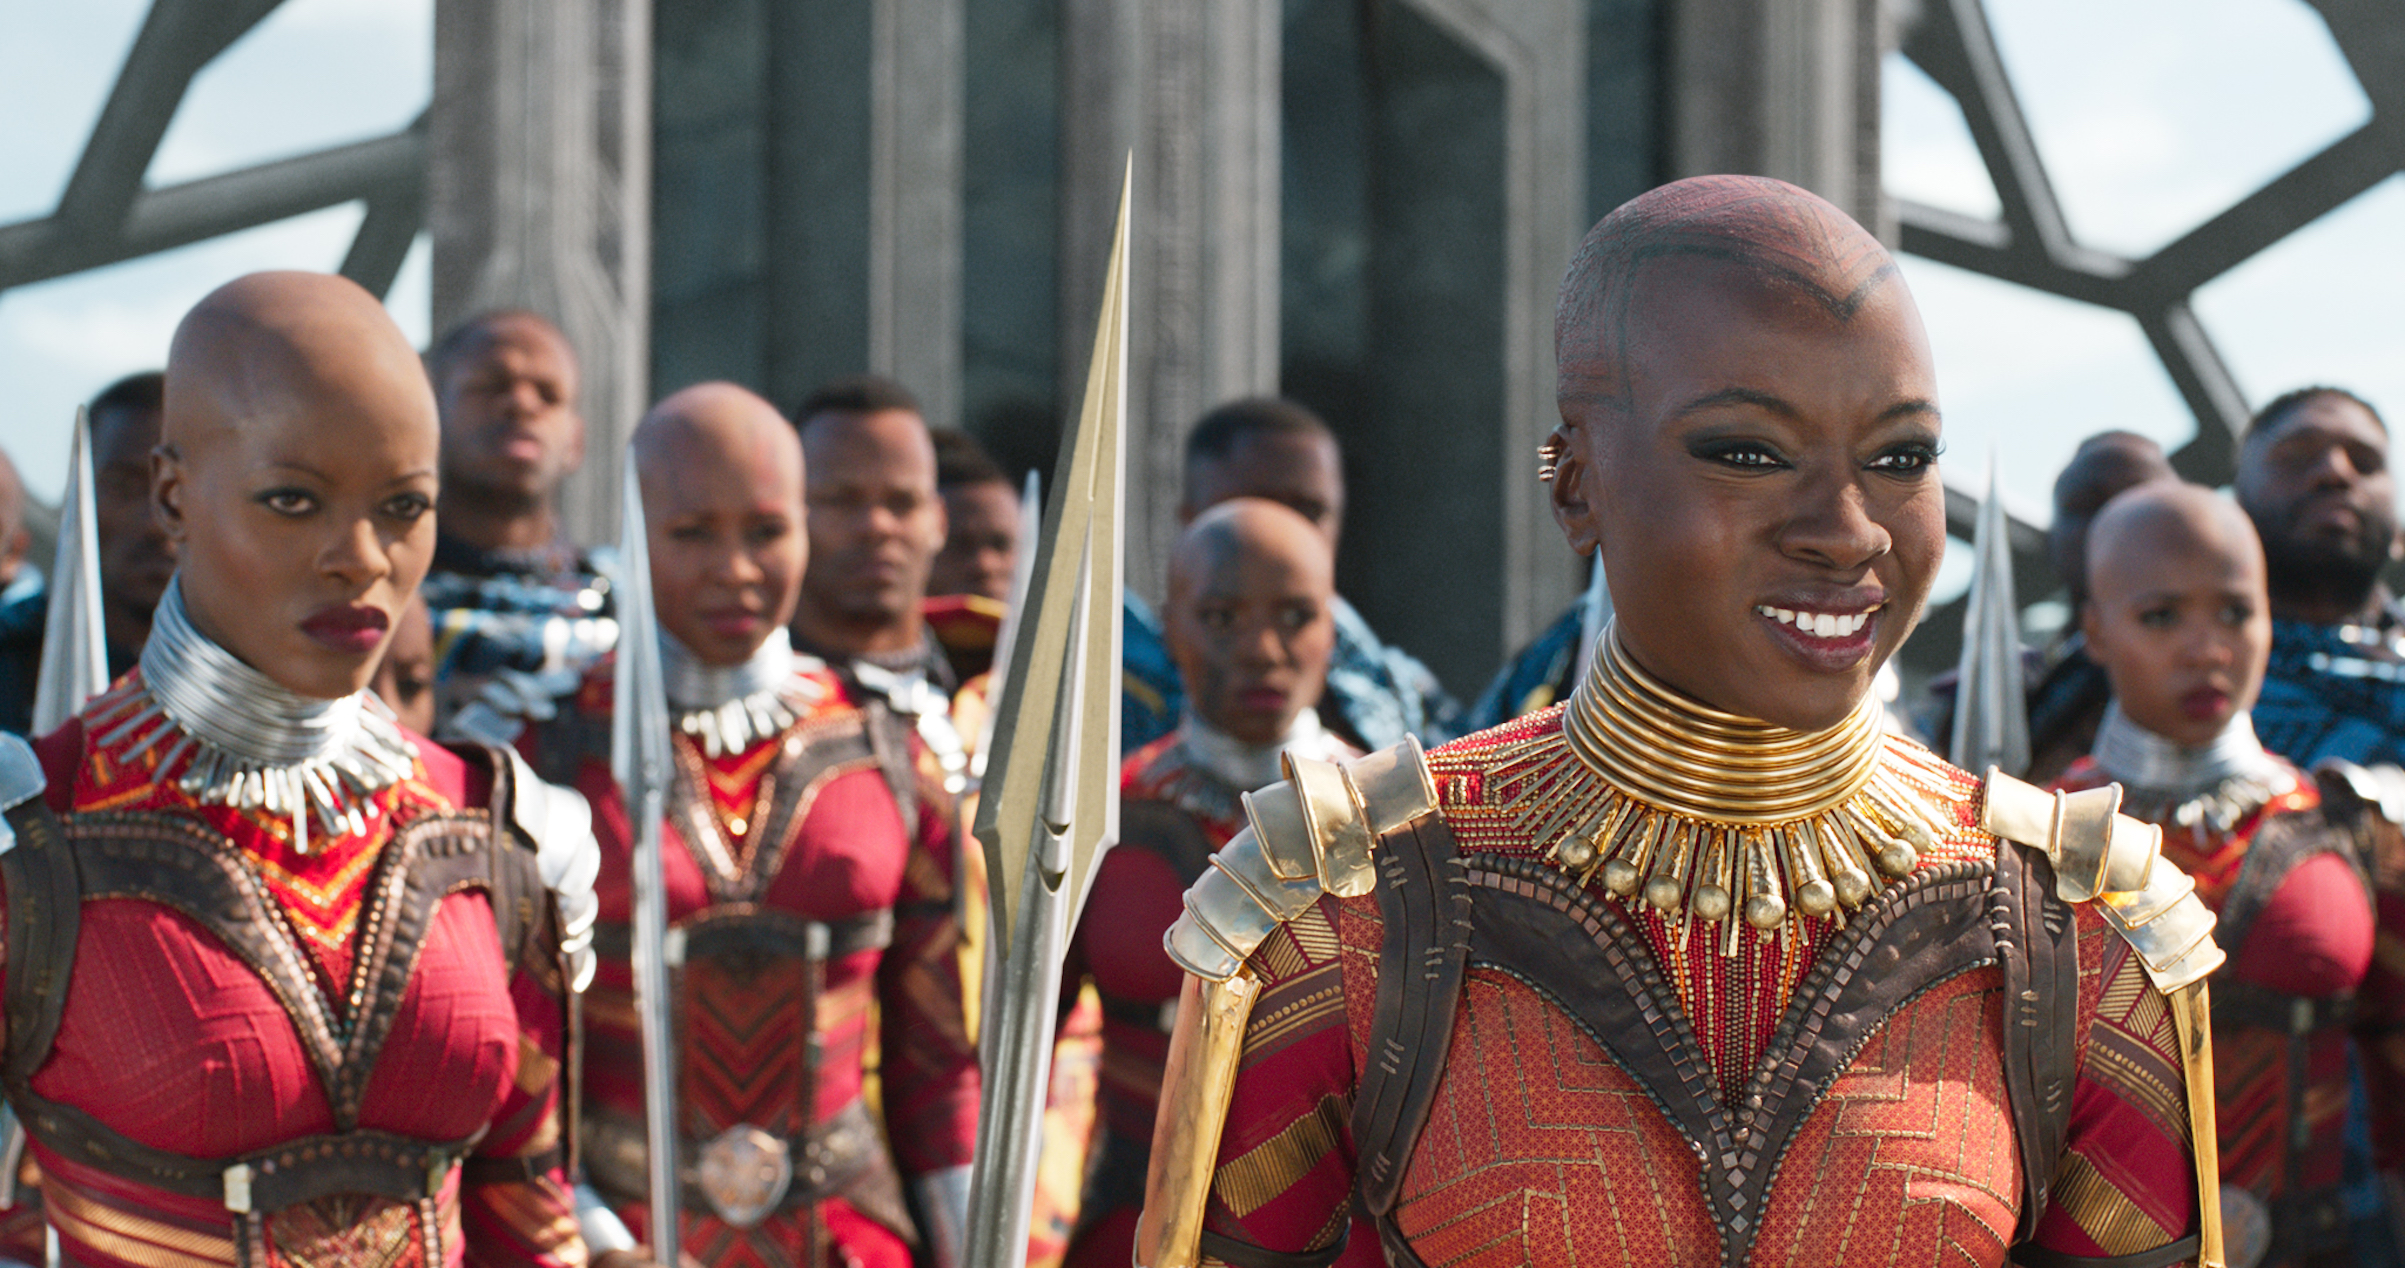 General Okoye and the Dora Milaje